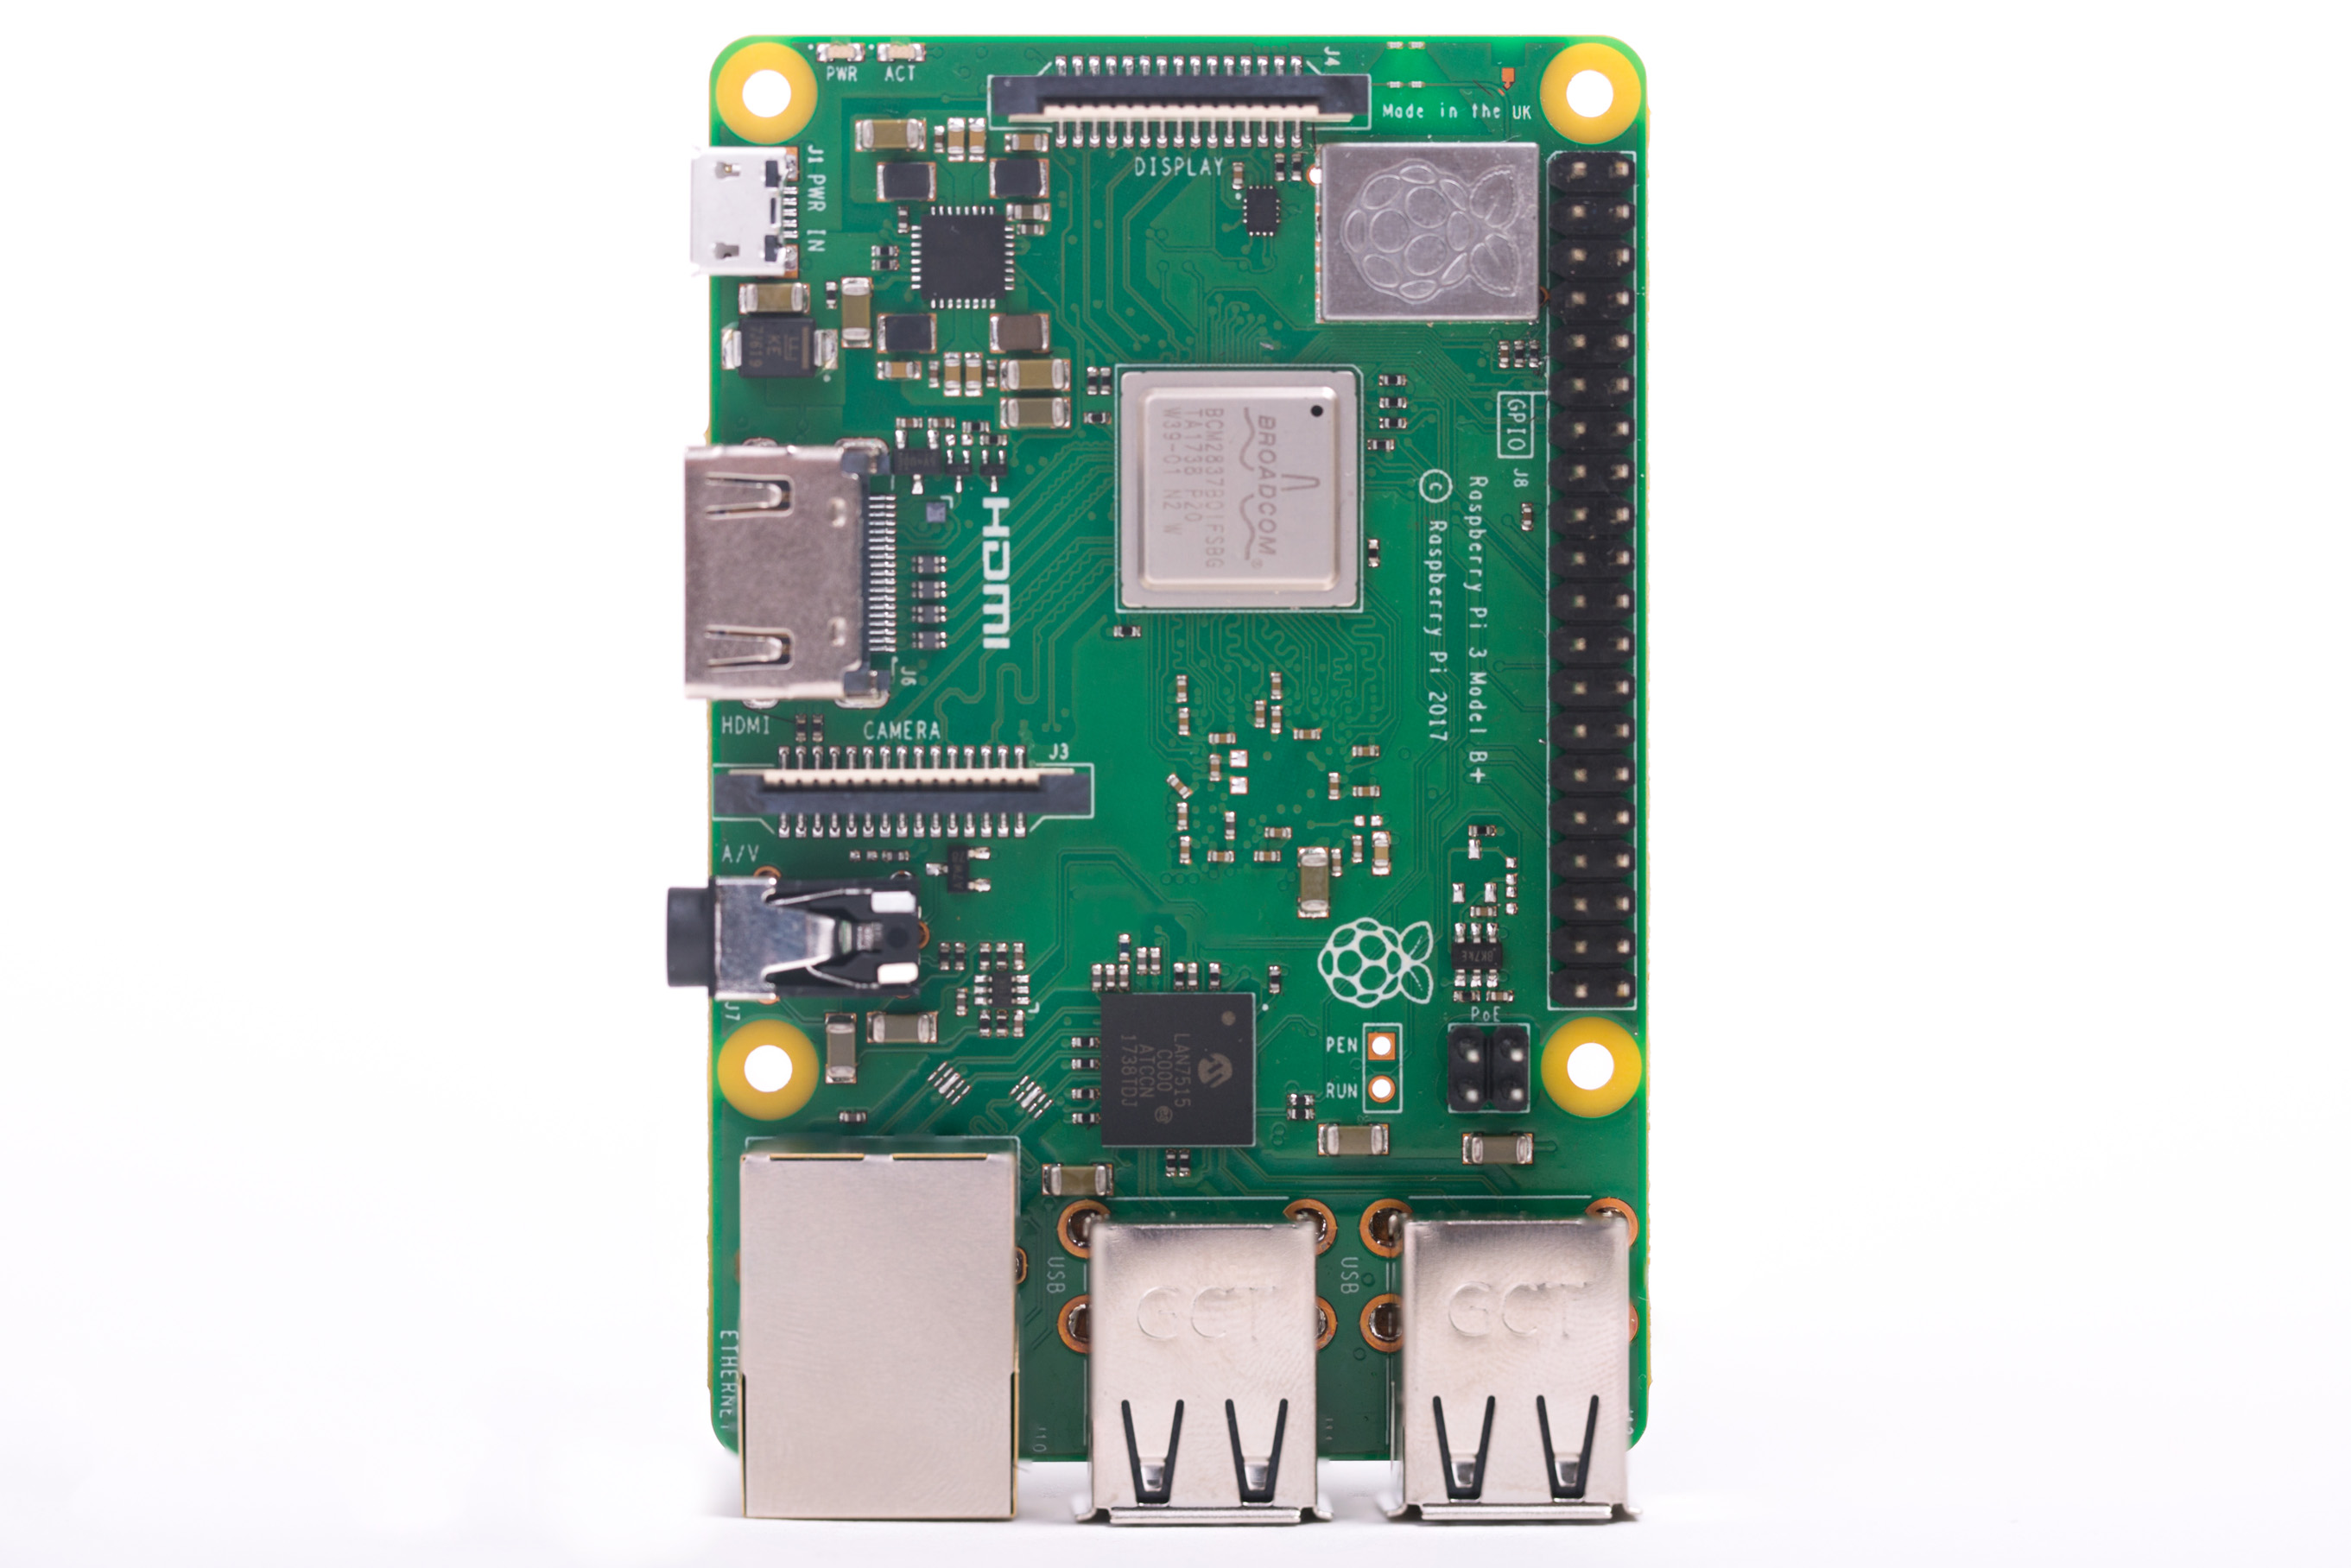 What's new with the Raspberry Pi 3 Model B+?